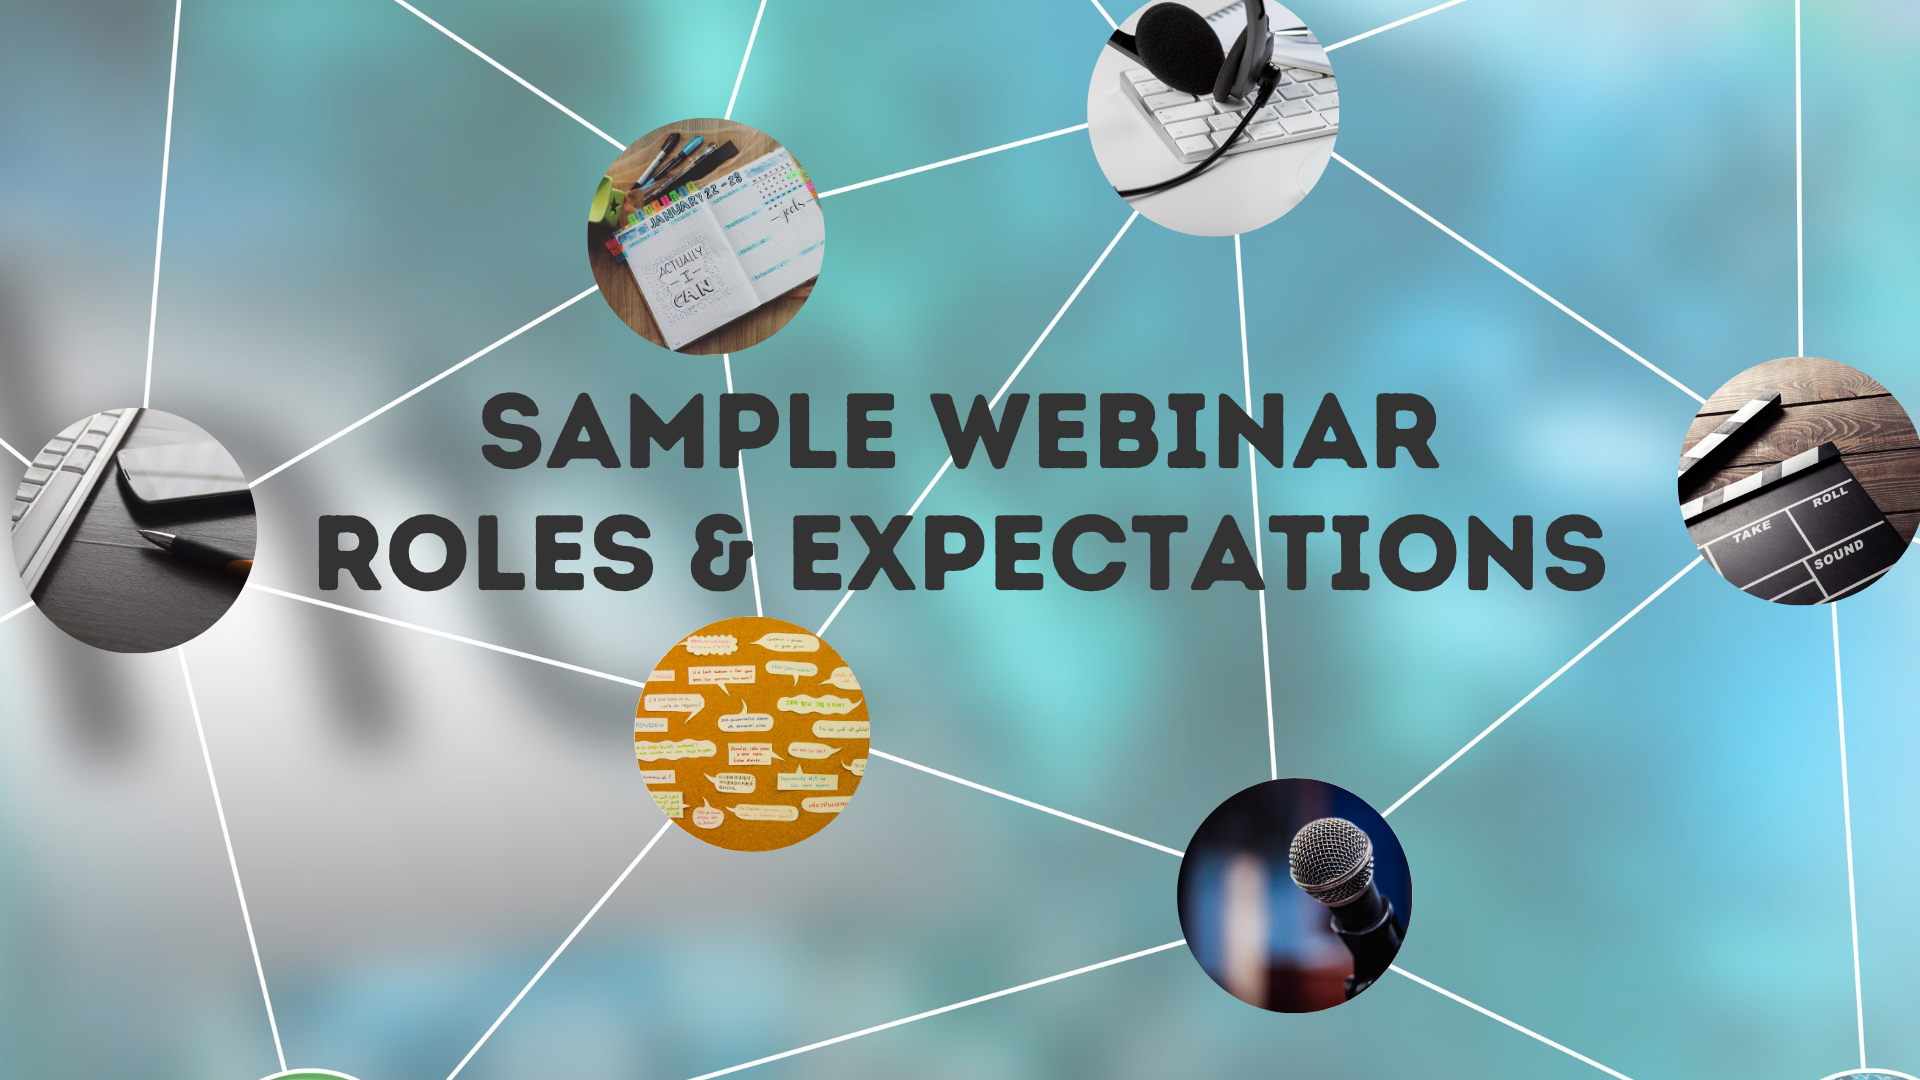 sample-webinar-roles-expectations.png